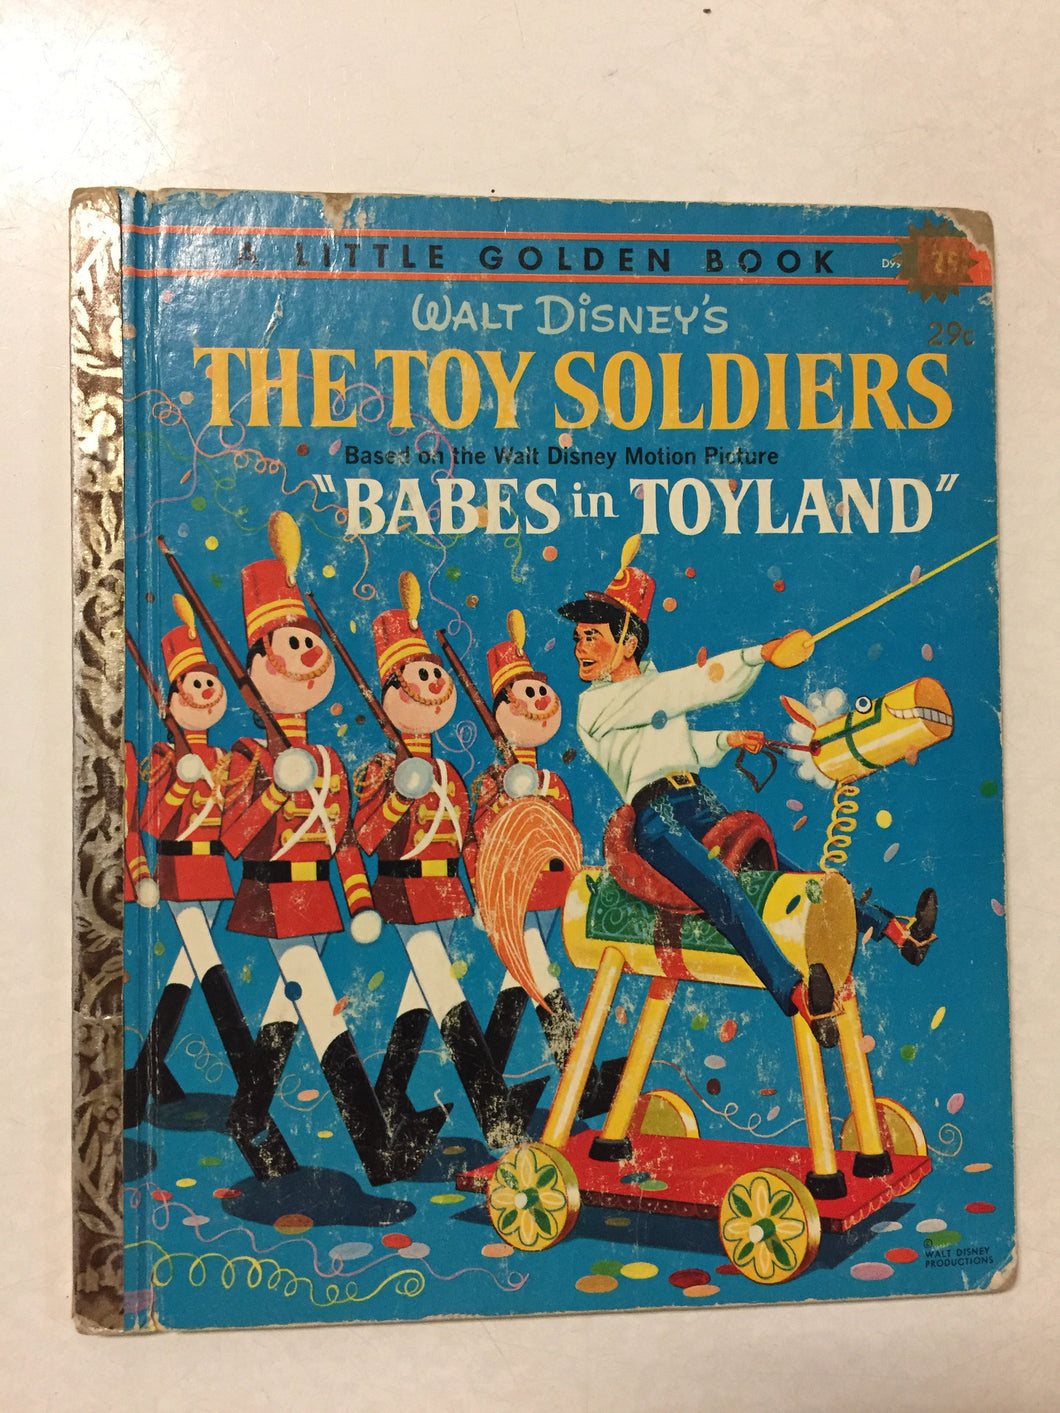 Walt Disney's The Toy Soldiers - Slickcatbooks